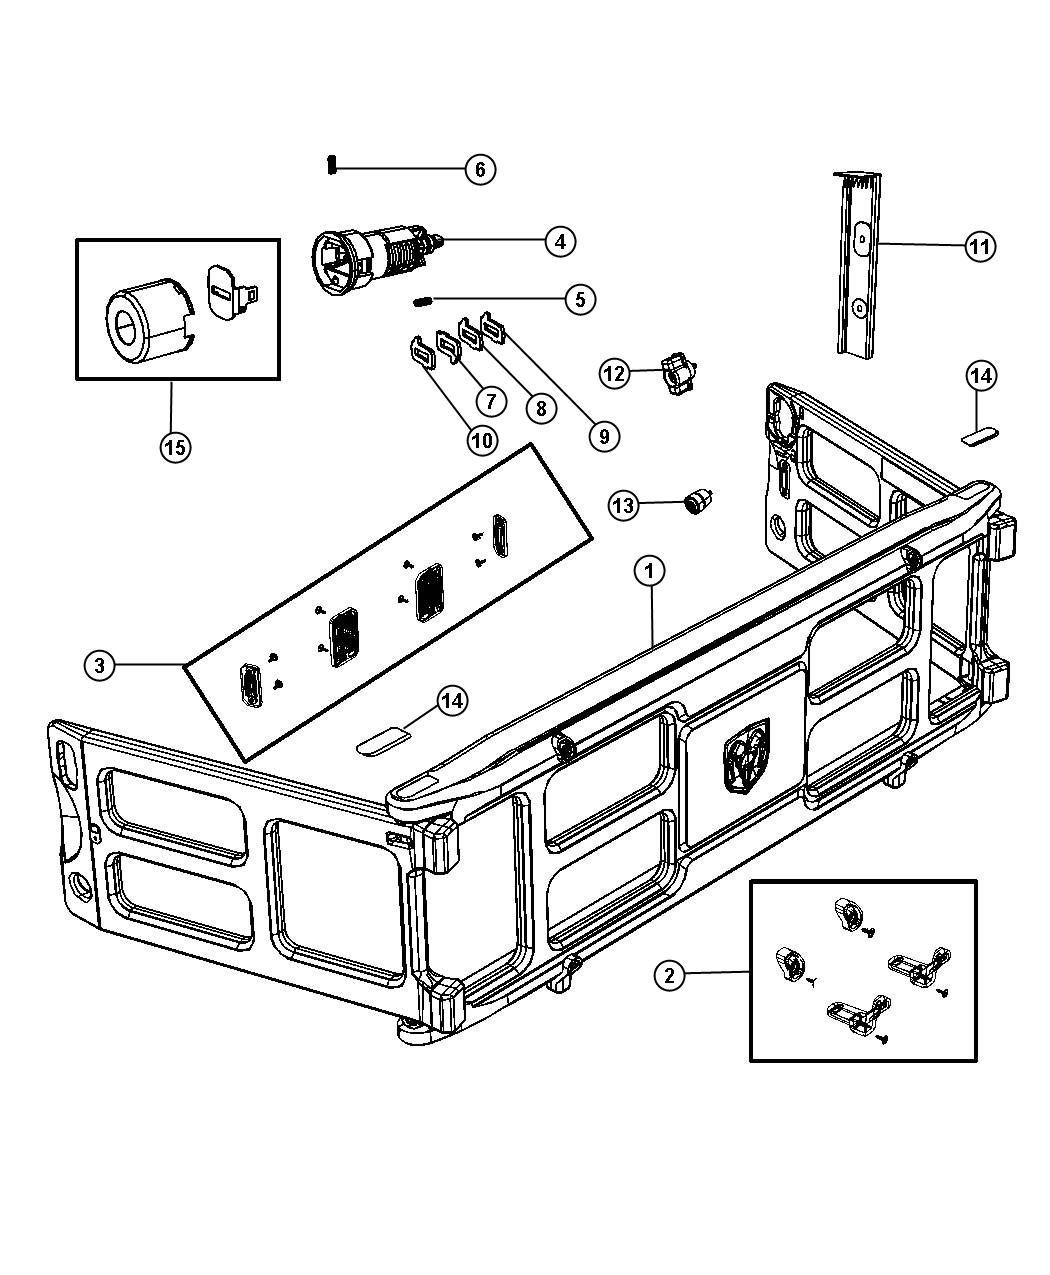 chevy silverado bed parts diagram